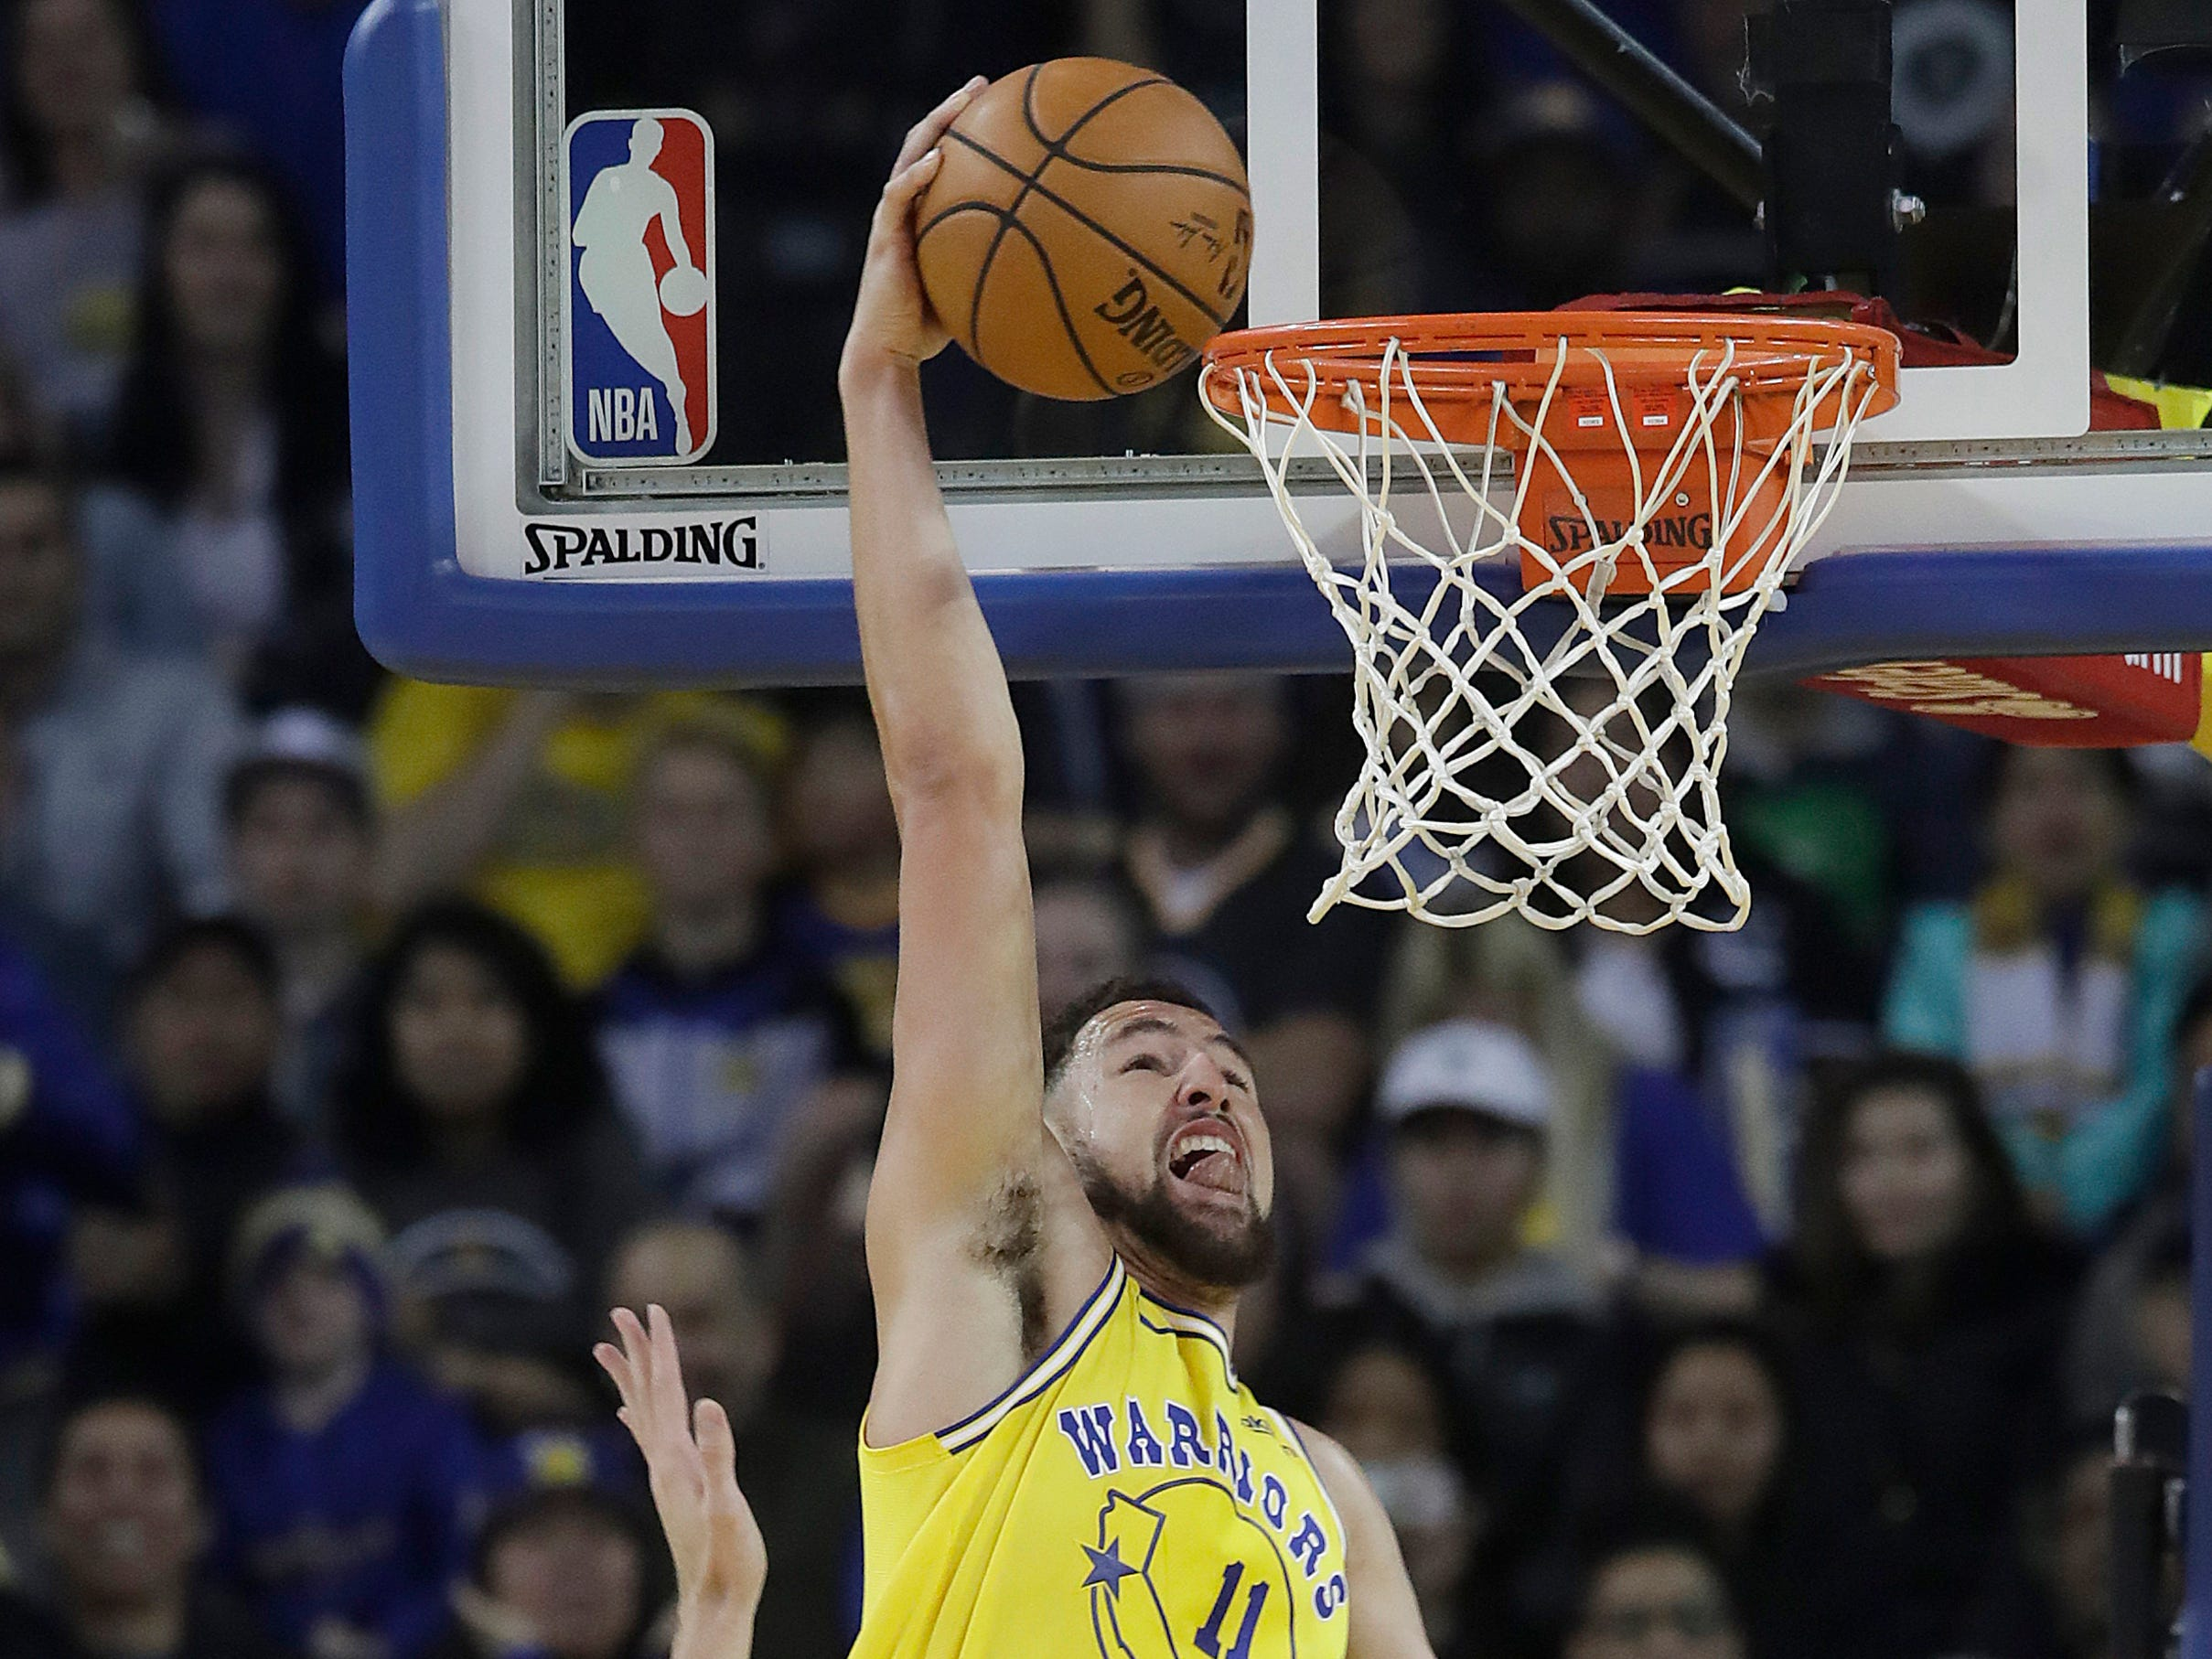 Golden State Warriors guard Klay Thompson (11) dunks over Phoenix Suns forward Dragan Bender, left, and guard Devin Booker during the first half of an NBA basketball game in Oakland, Calif., Sunday, March 10, 2019. (AP Photo/Jeff Chiu)